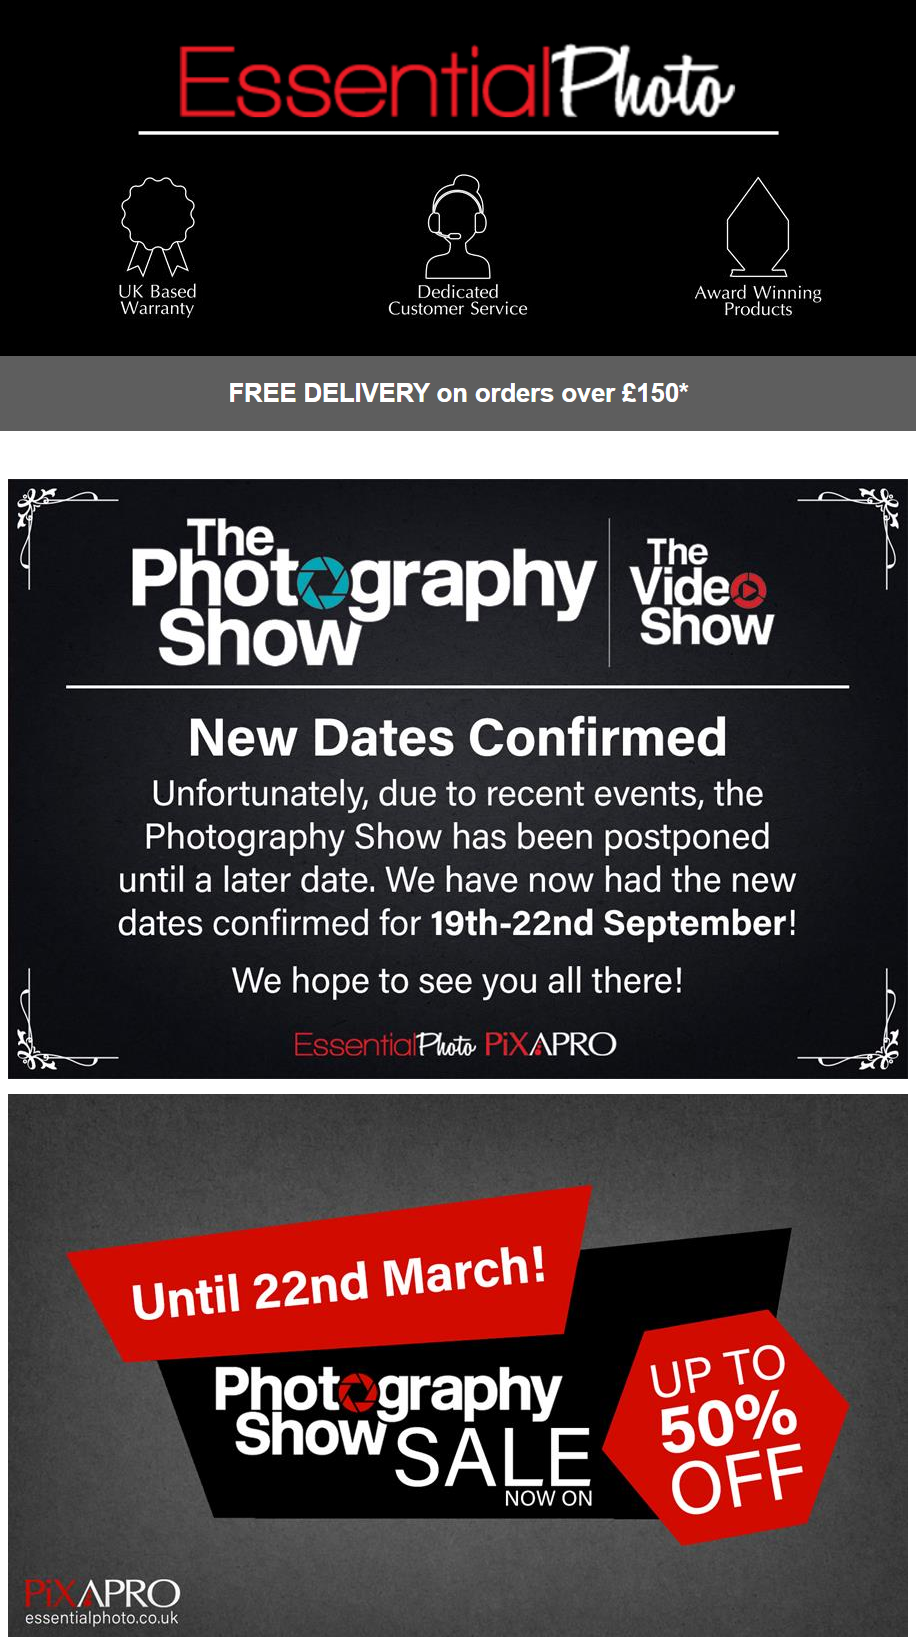 essential-photo-the-photography-show-2020-has-now-been-rescheduled-however-our-sales-are-still